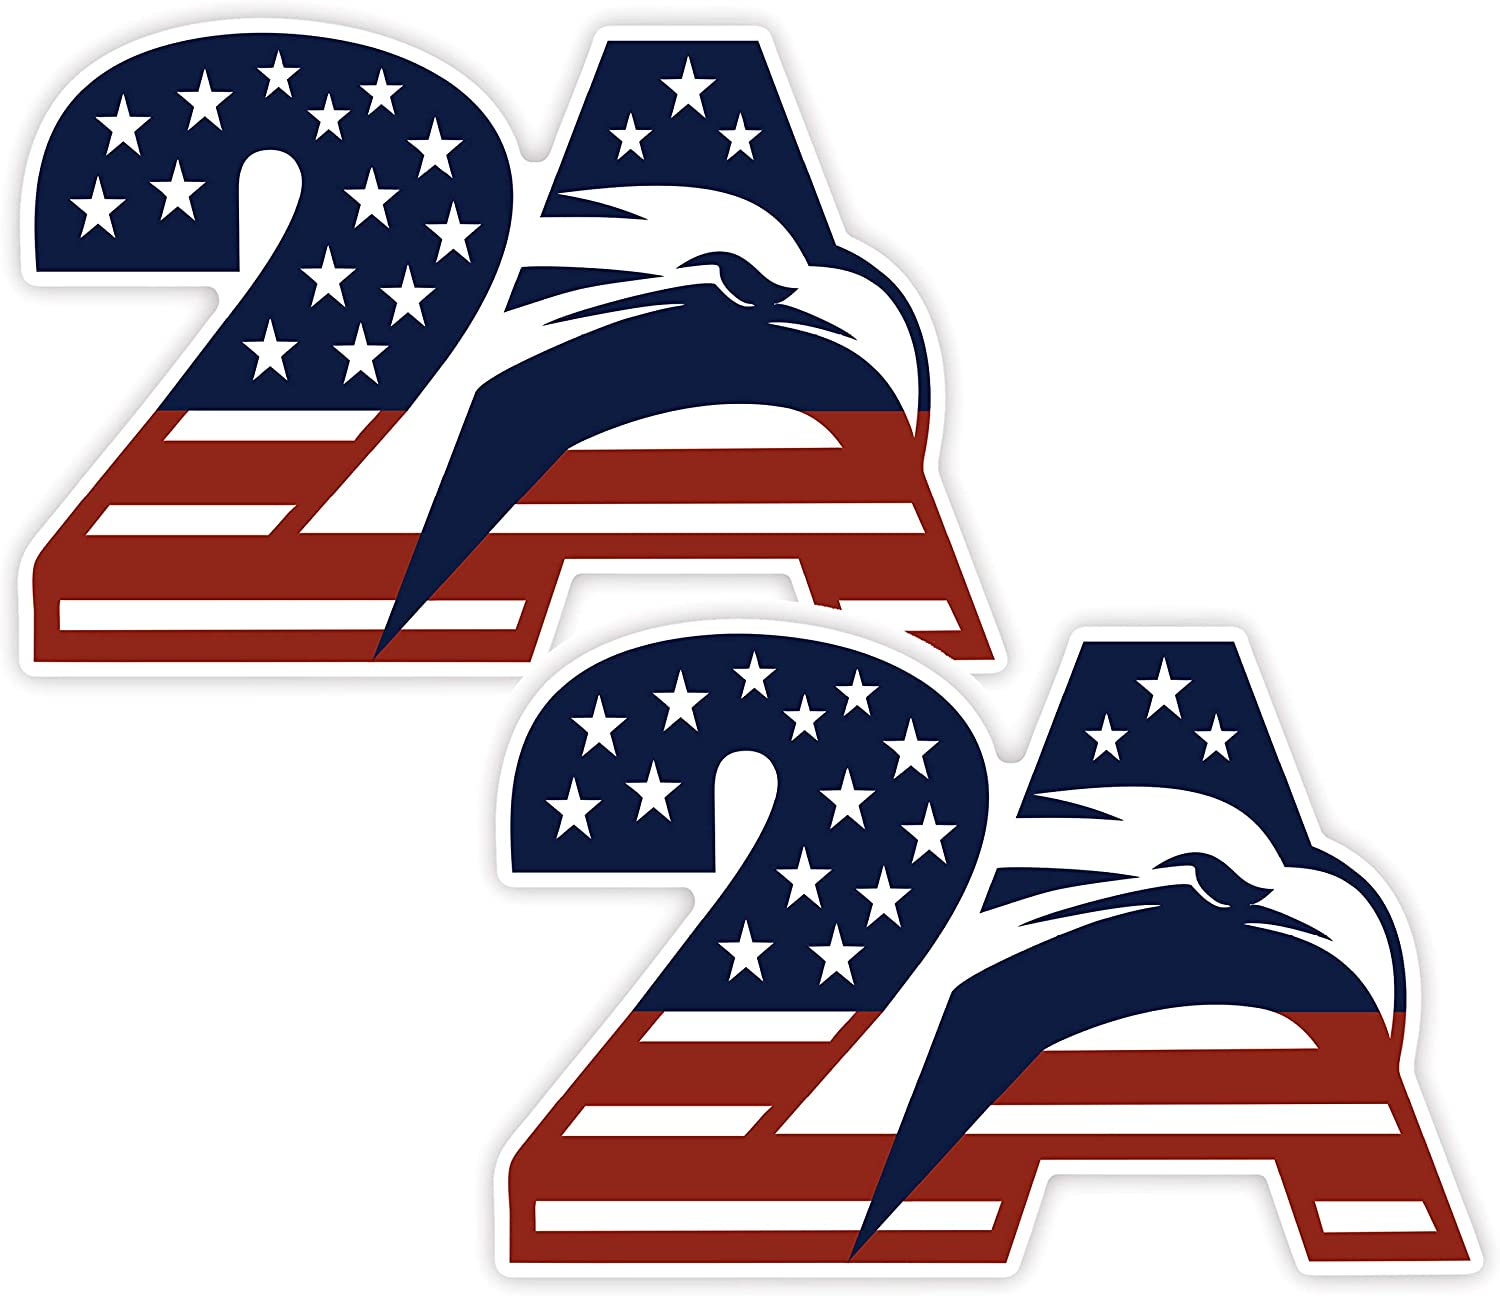 2A Second Amendment Patriotic Eagle Sticker - Window Sticker Cars Trucks Laptops - 2 Pack